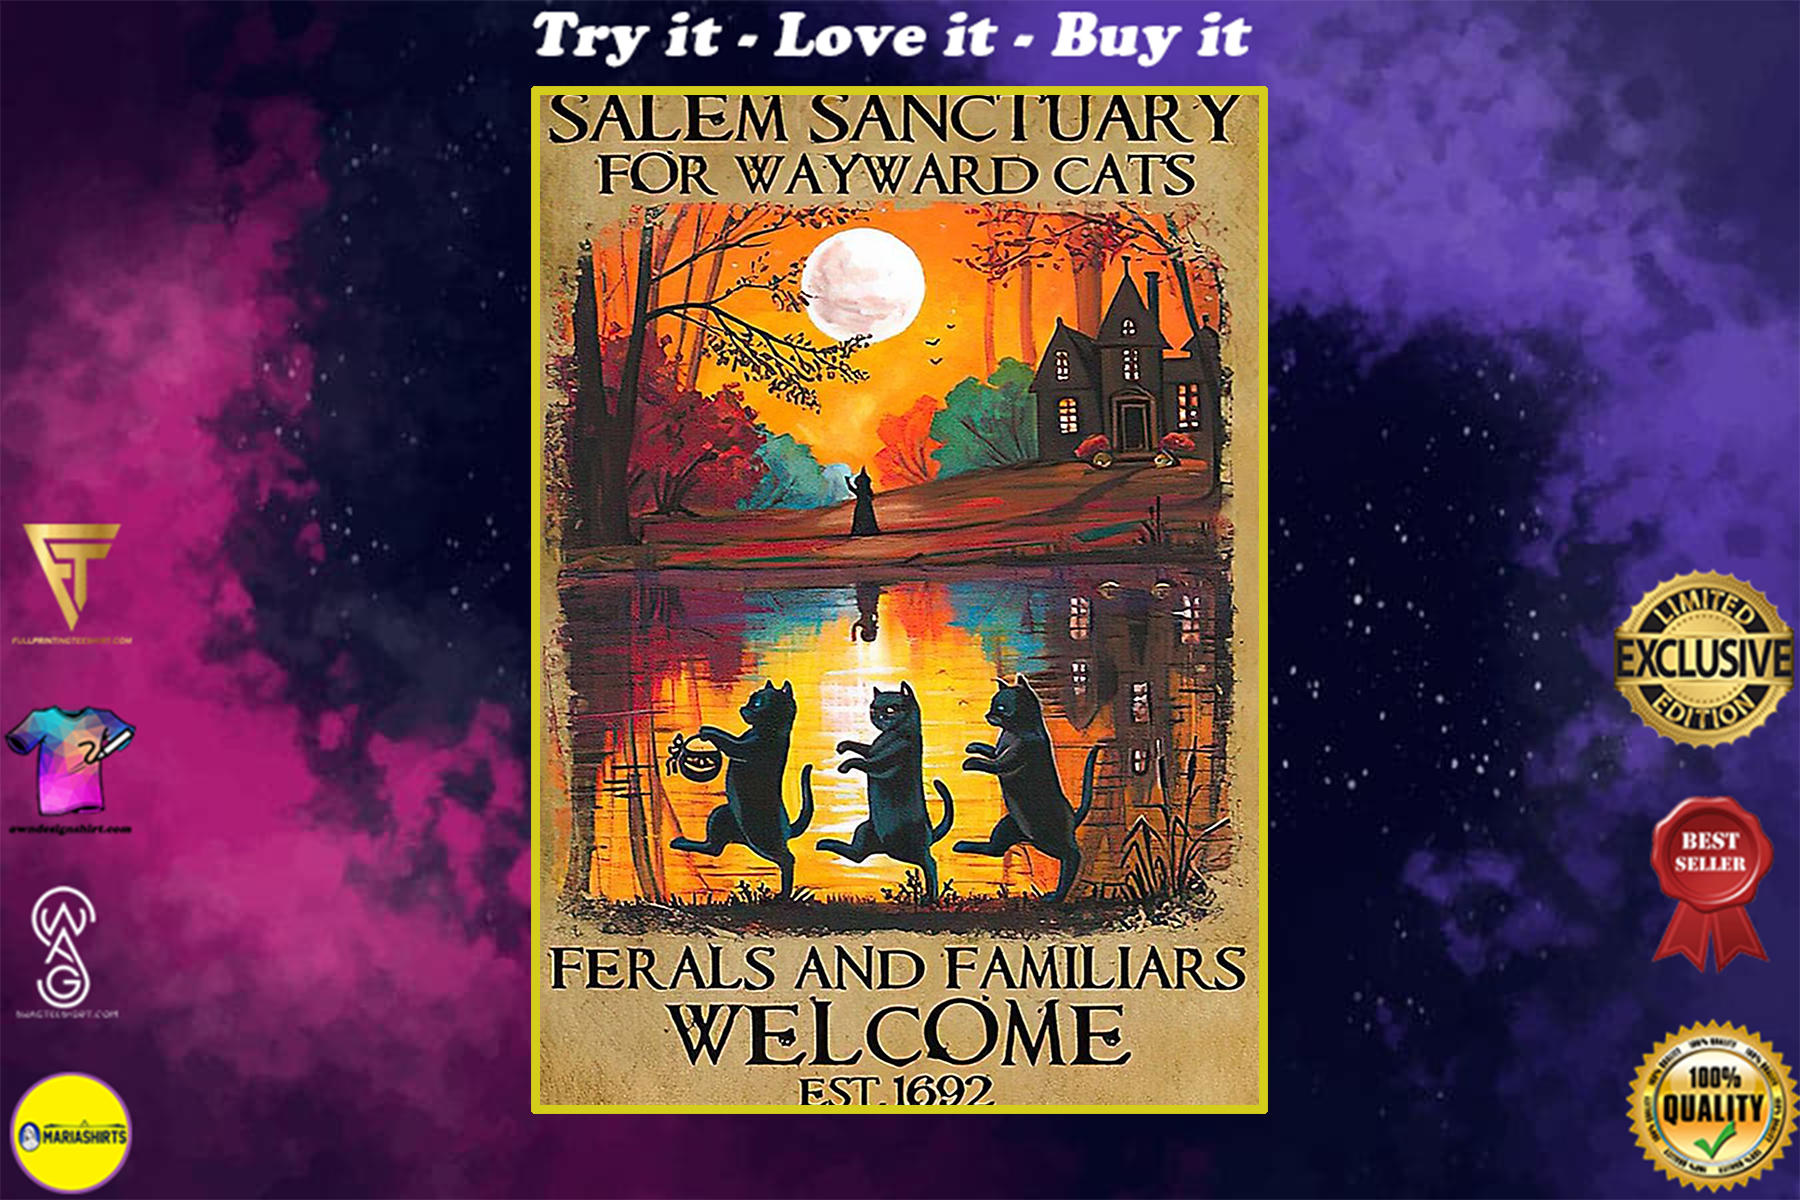 vintage salem sanctuary for wayward cats ferals and familiars welcome est 1692 black witch cat poster